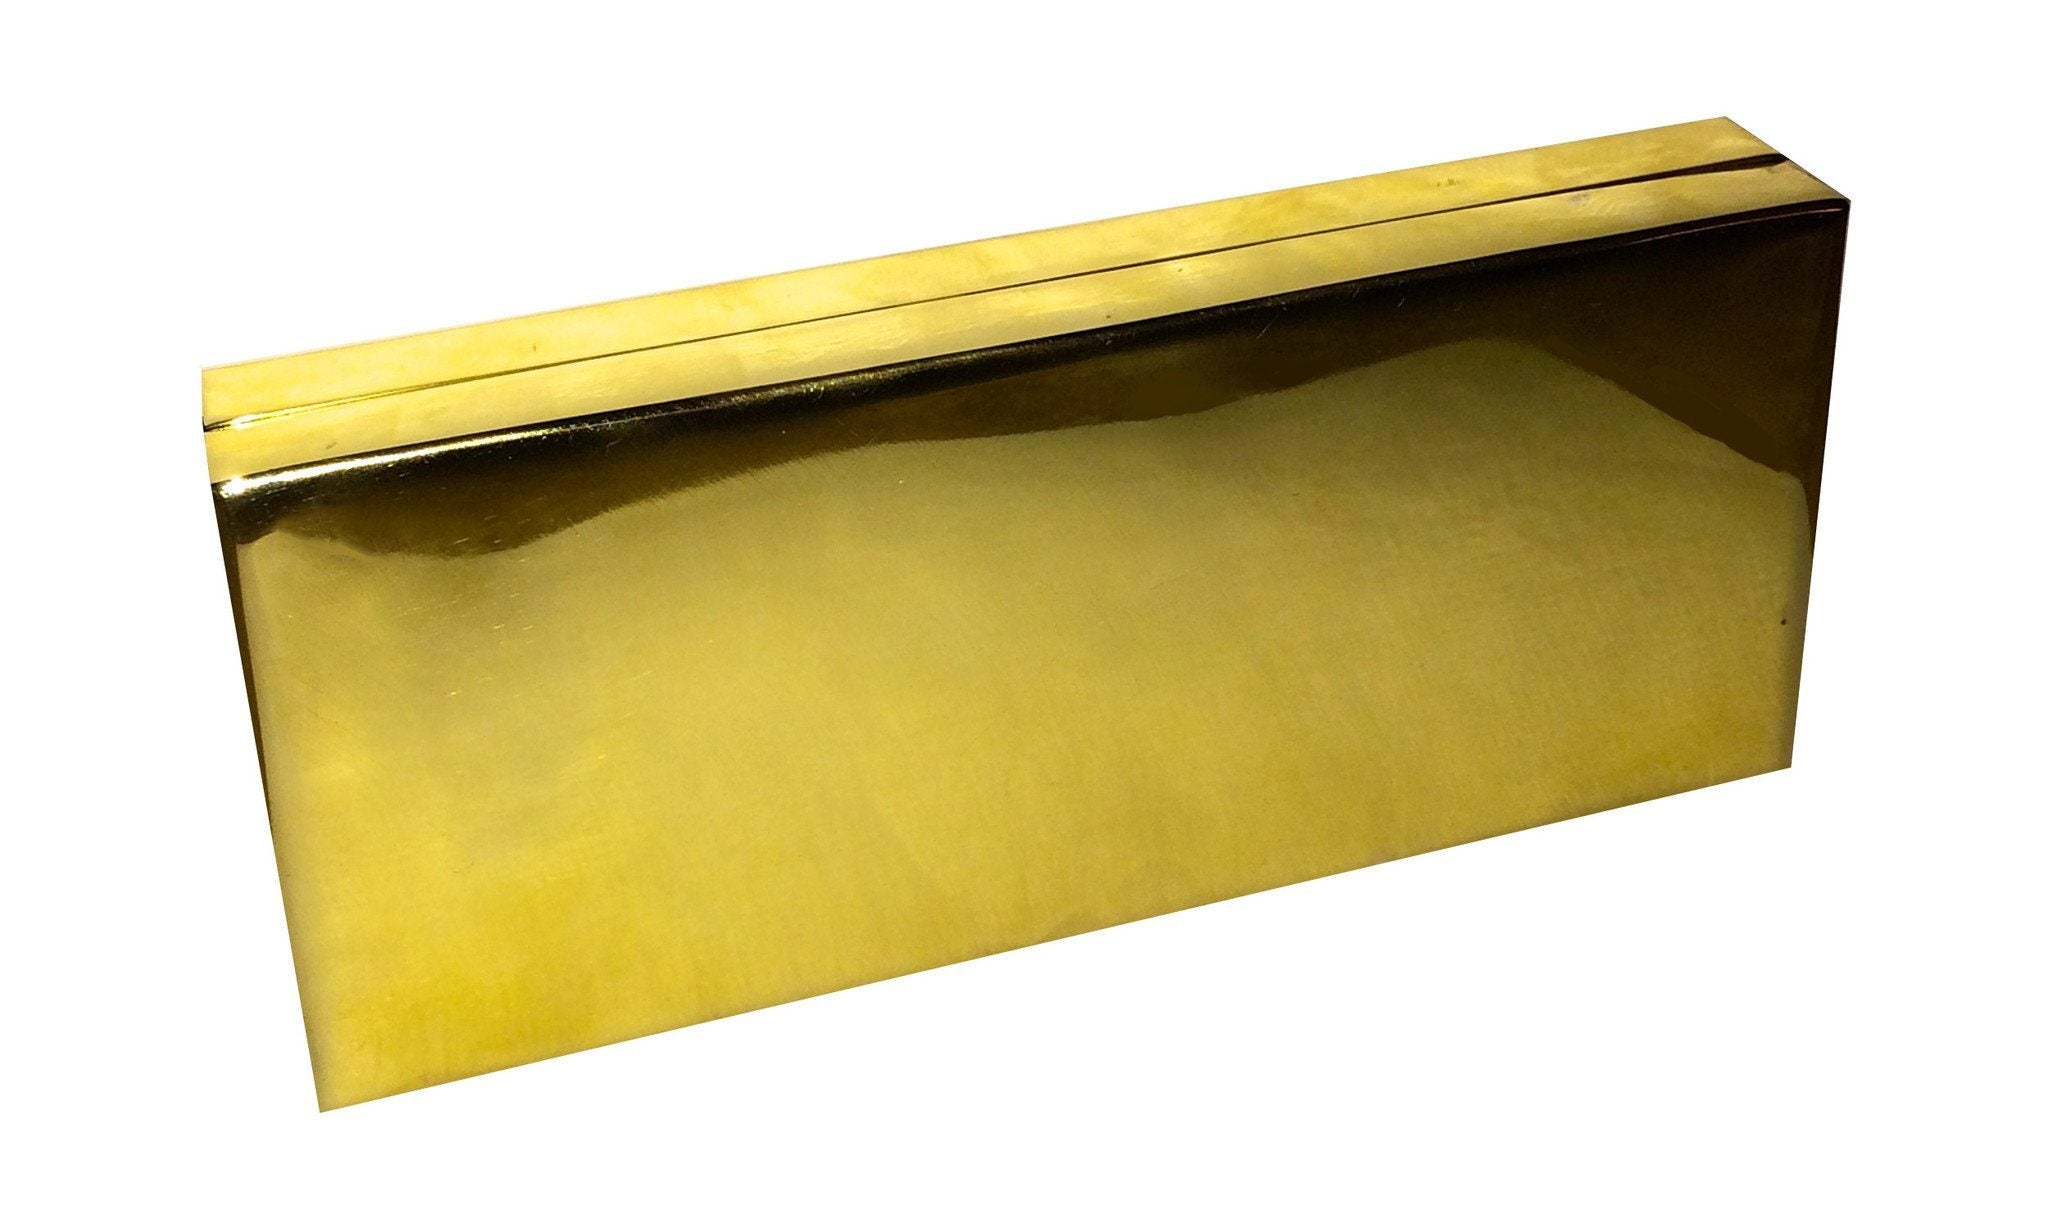 Gold Brass Handmade Clutch - Blumera